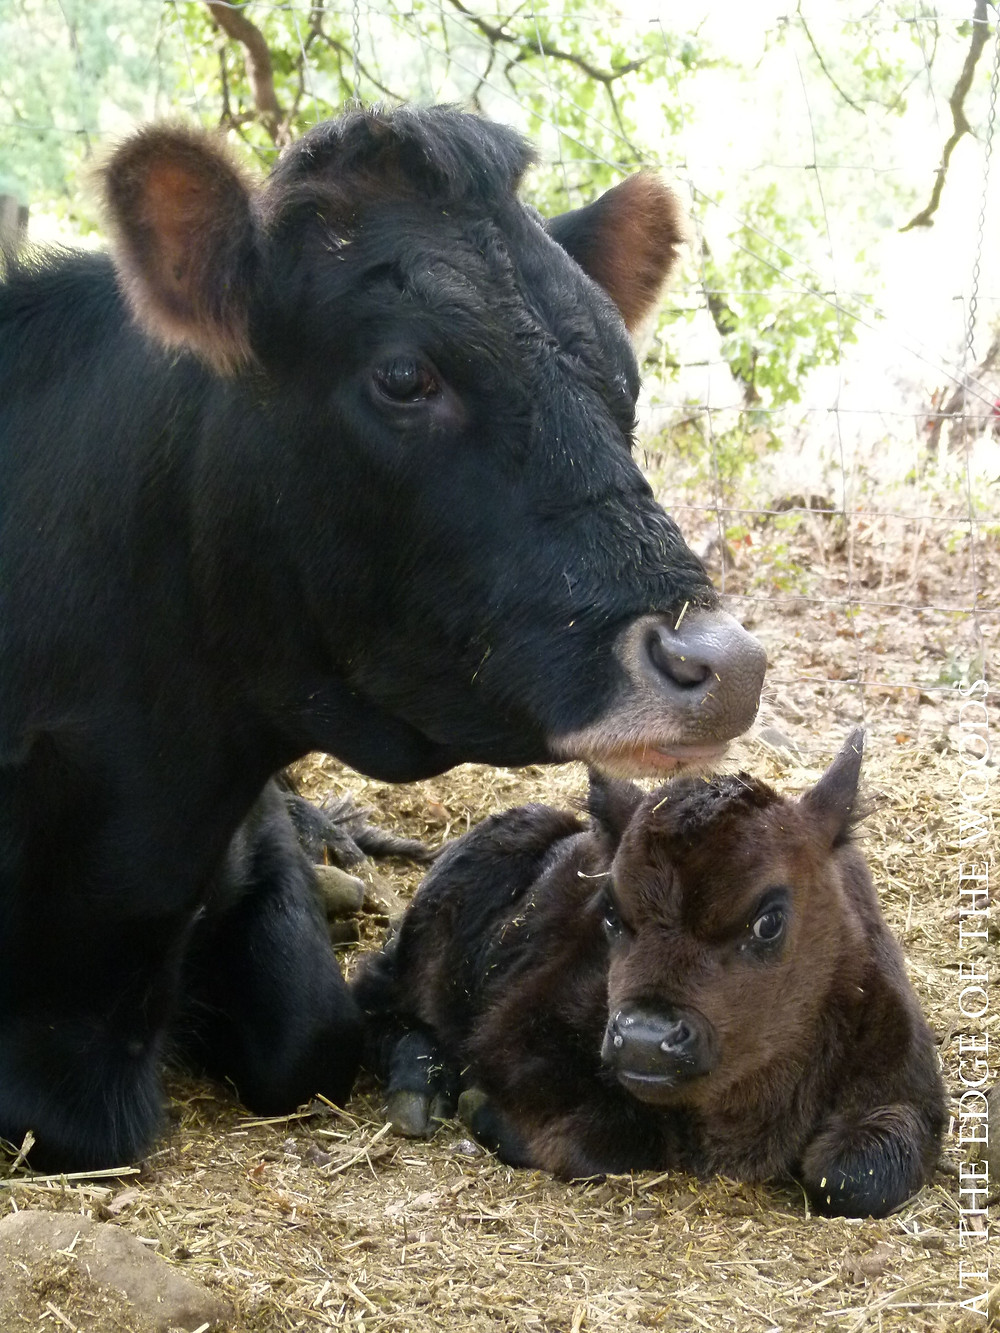 our heifer, Buttercup, and her new calf